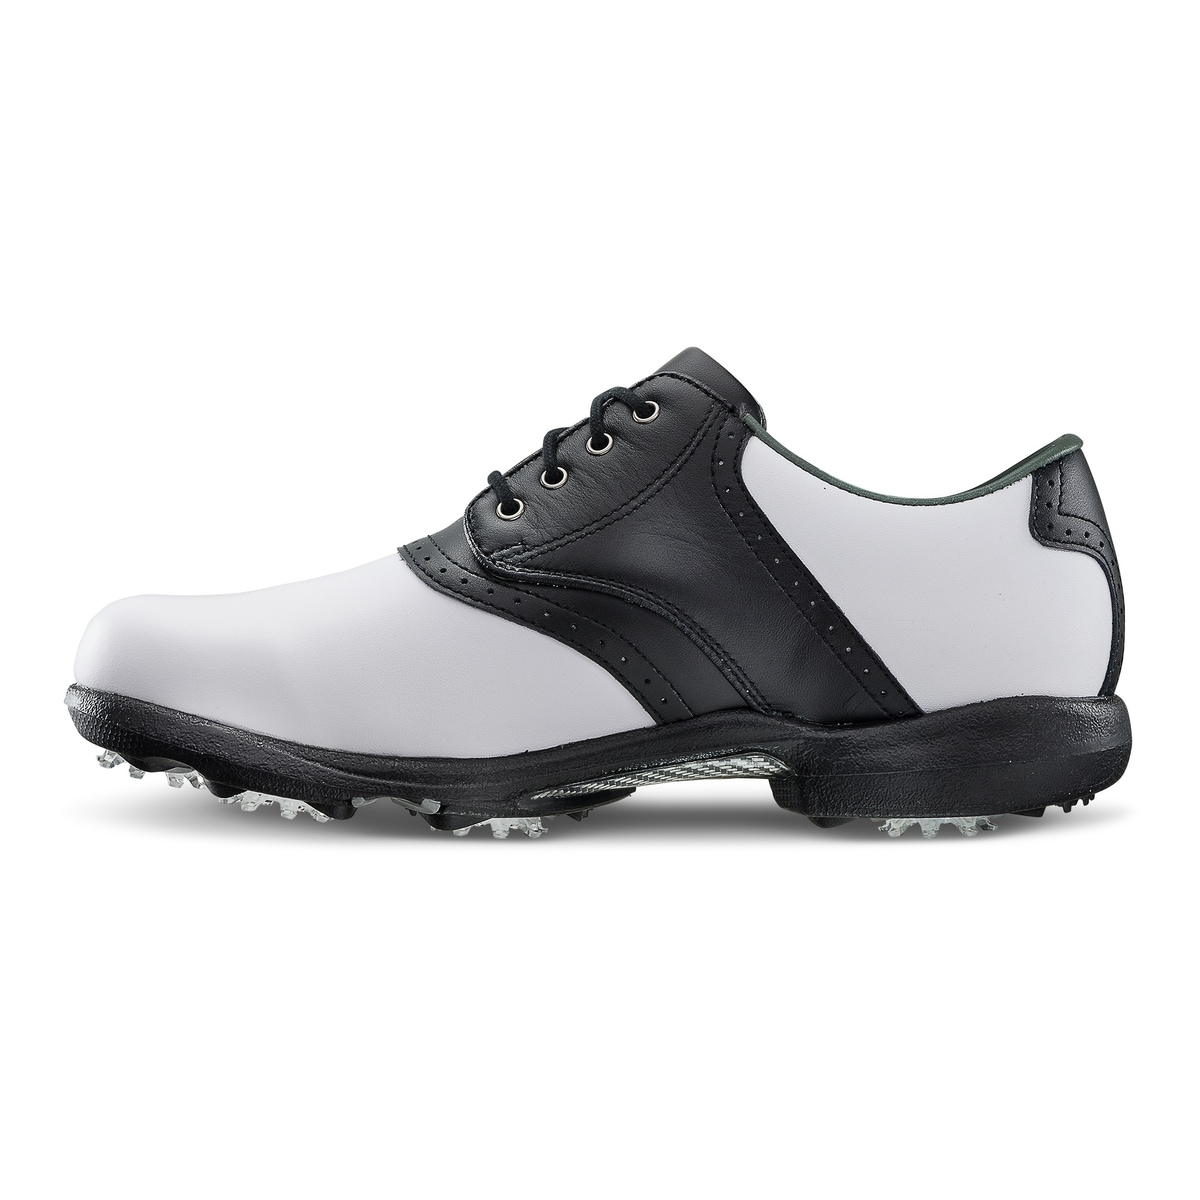 DryJoys Kiltie Women